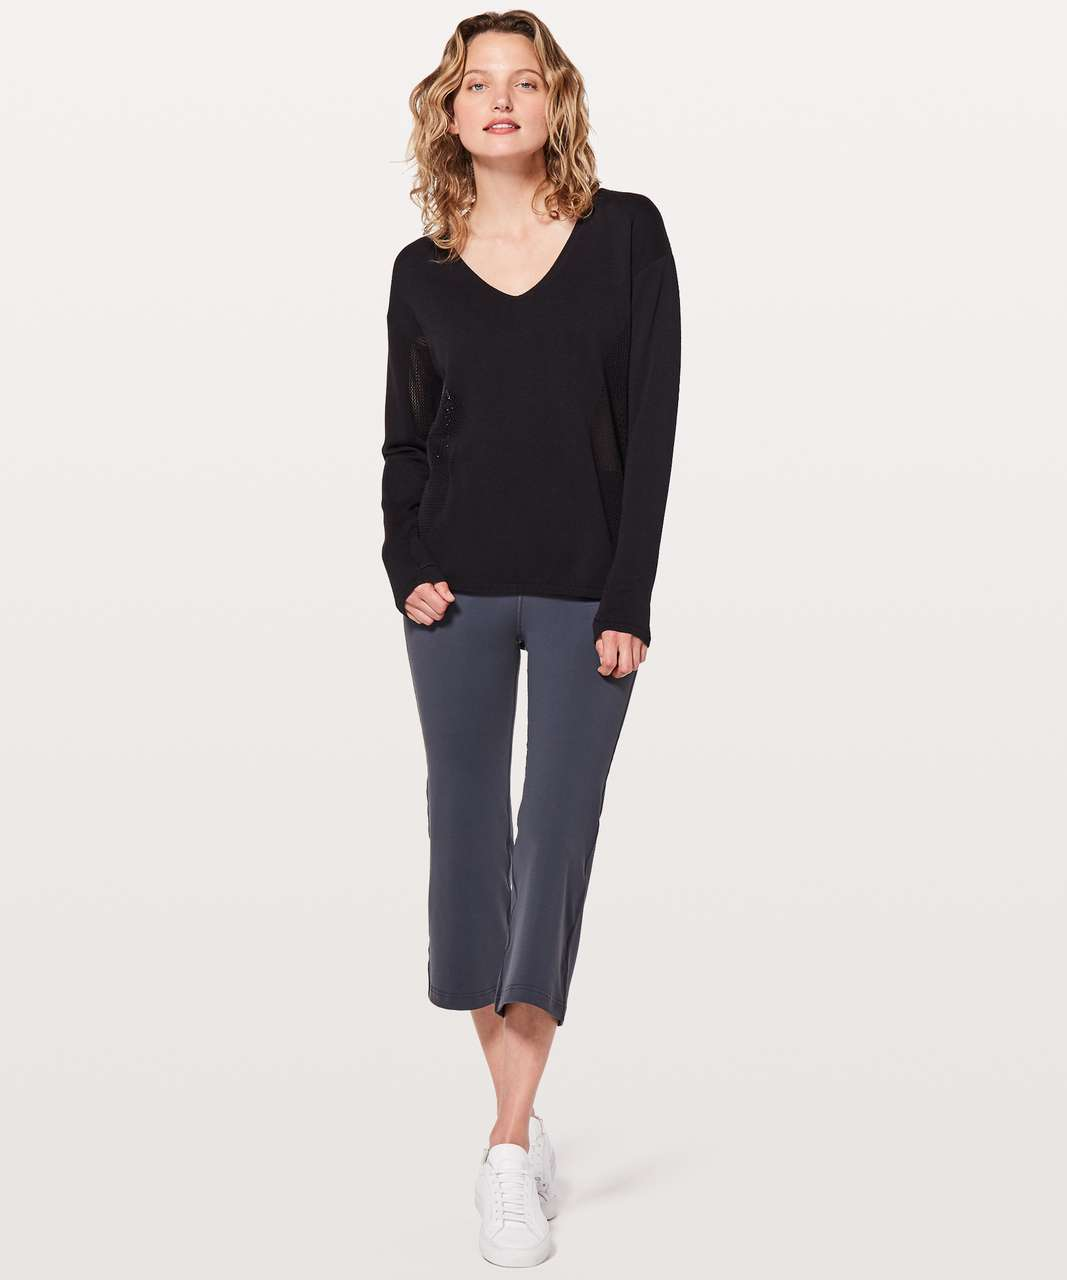 Lululemon Still Movement Sweater - Black